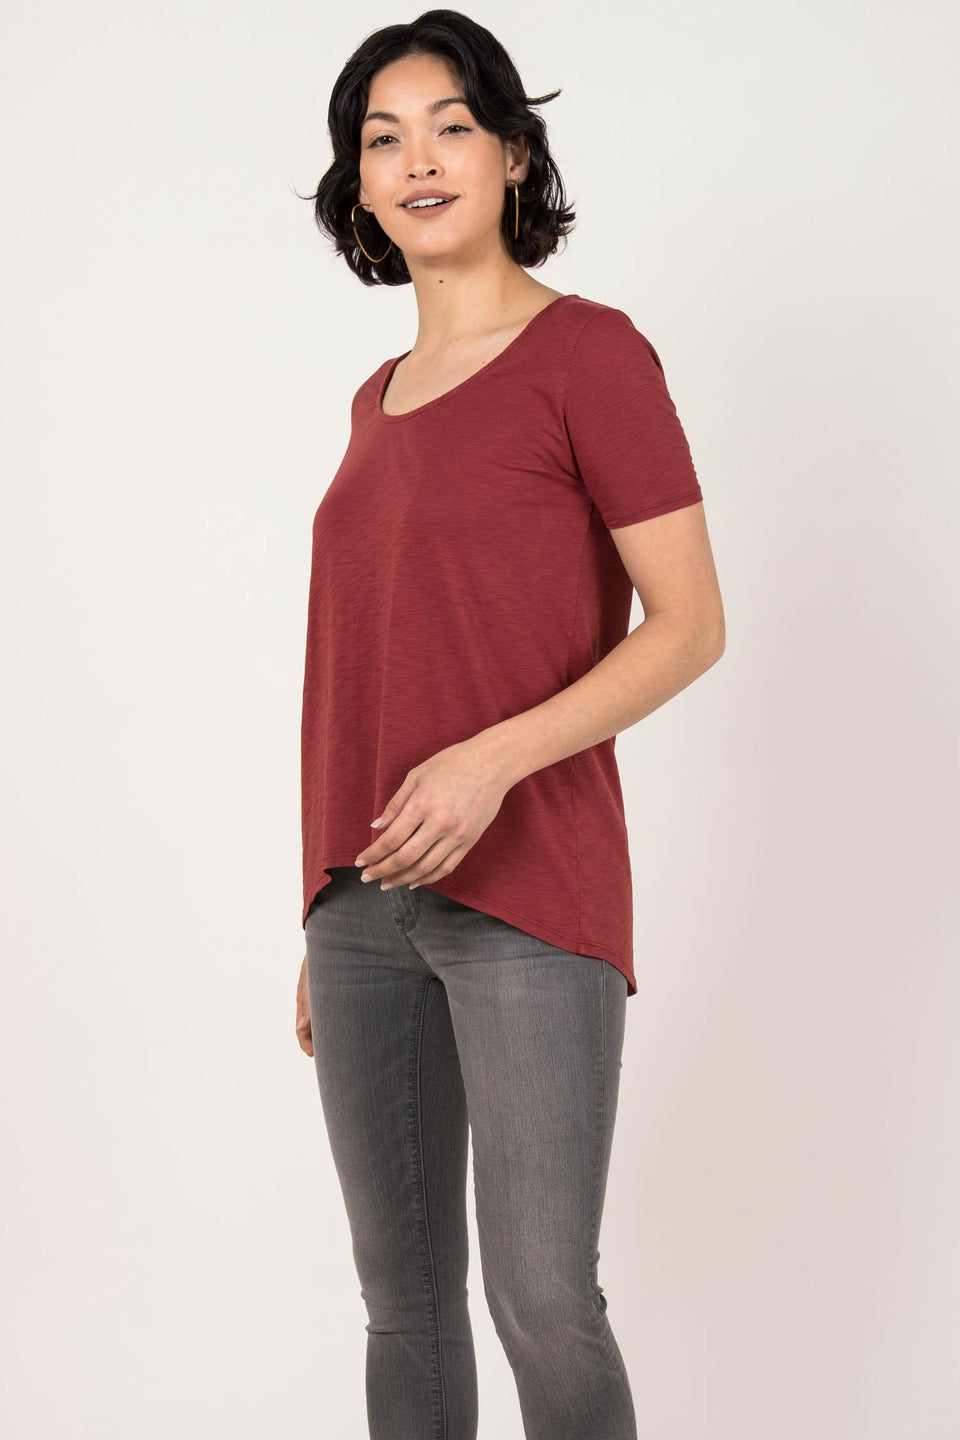 Essential Slub U Neck in Cherry